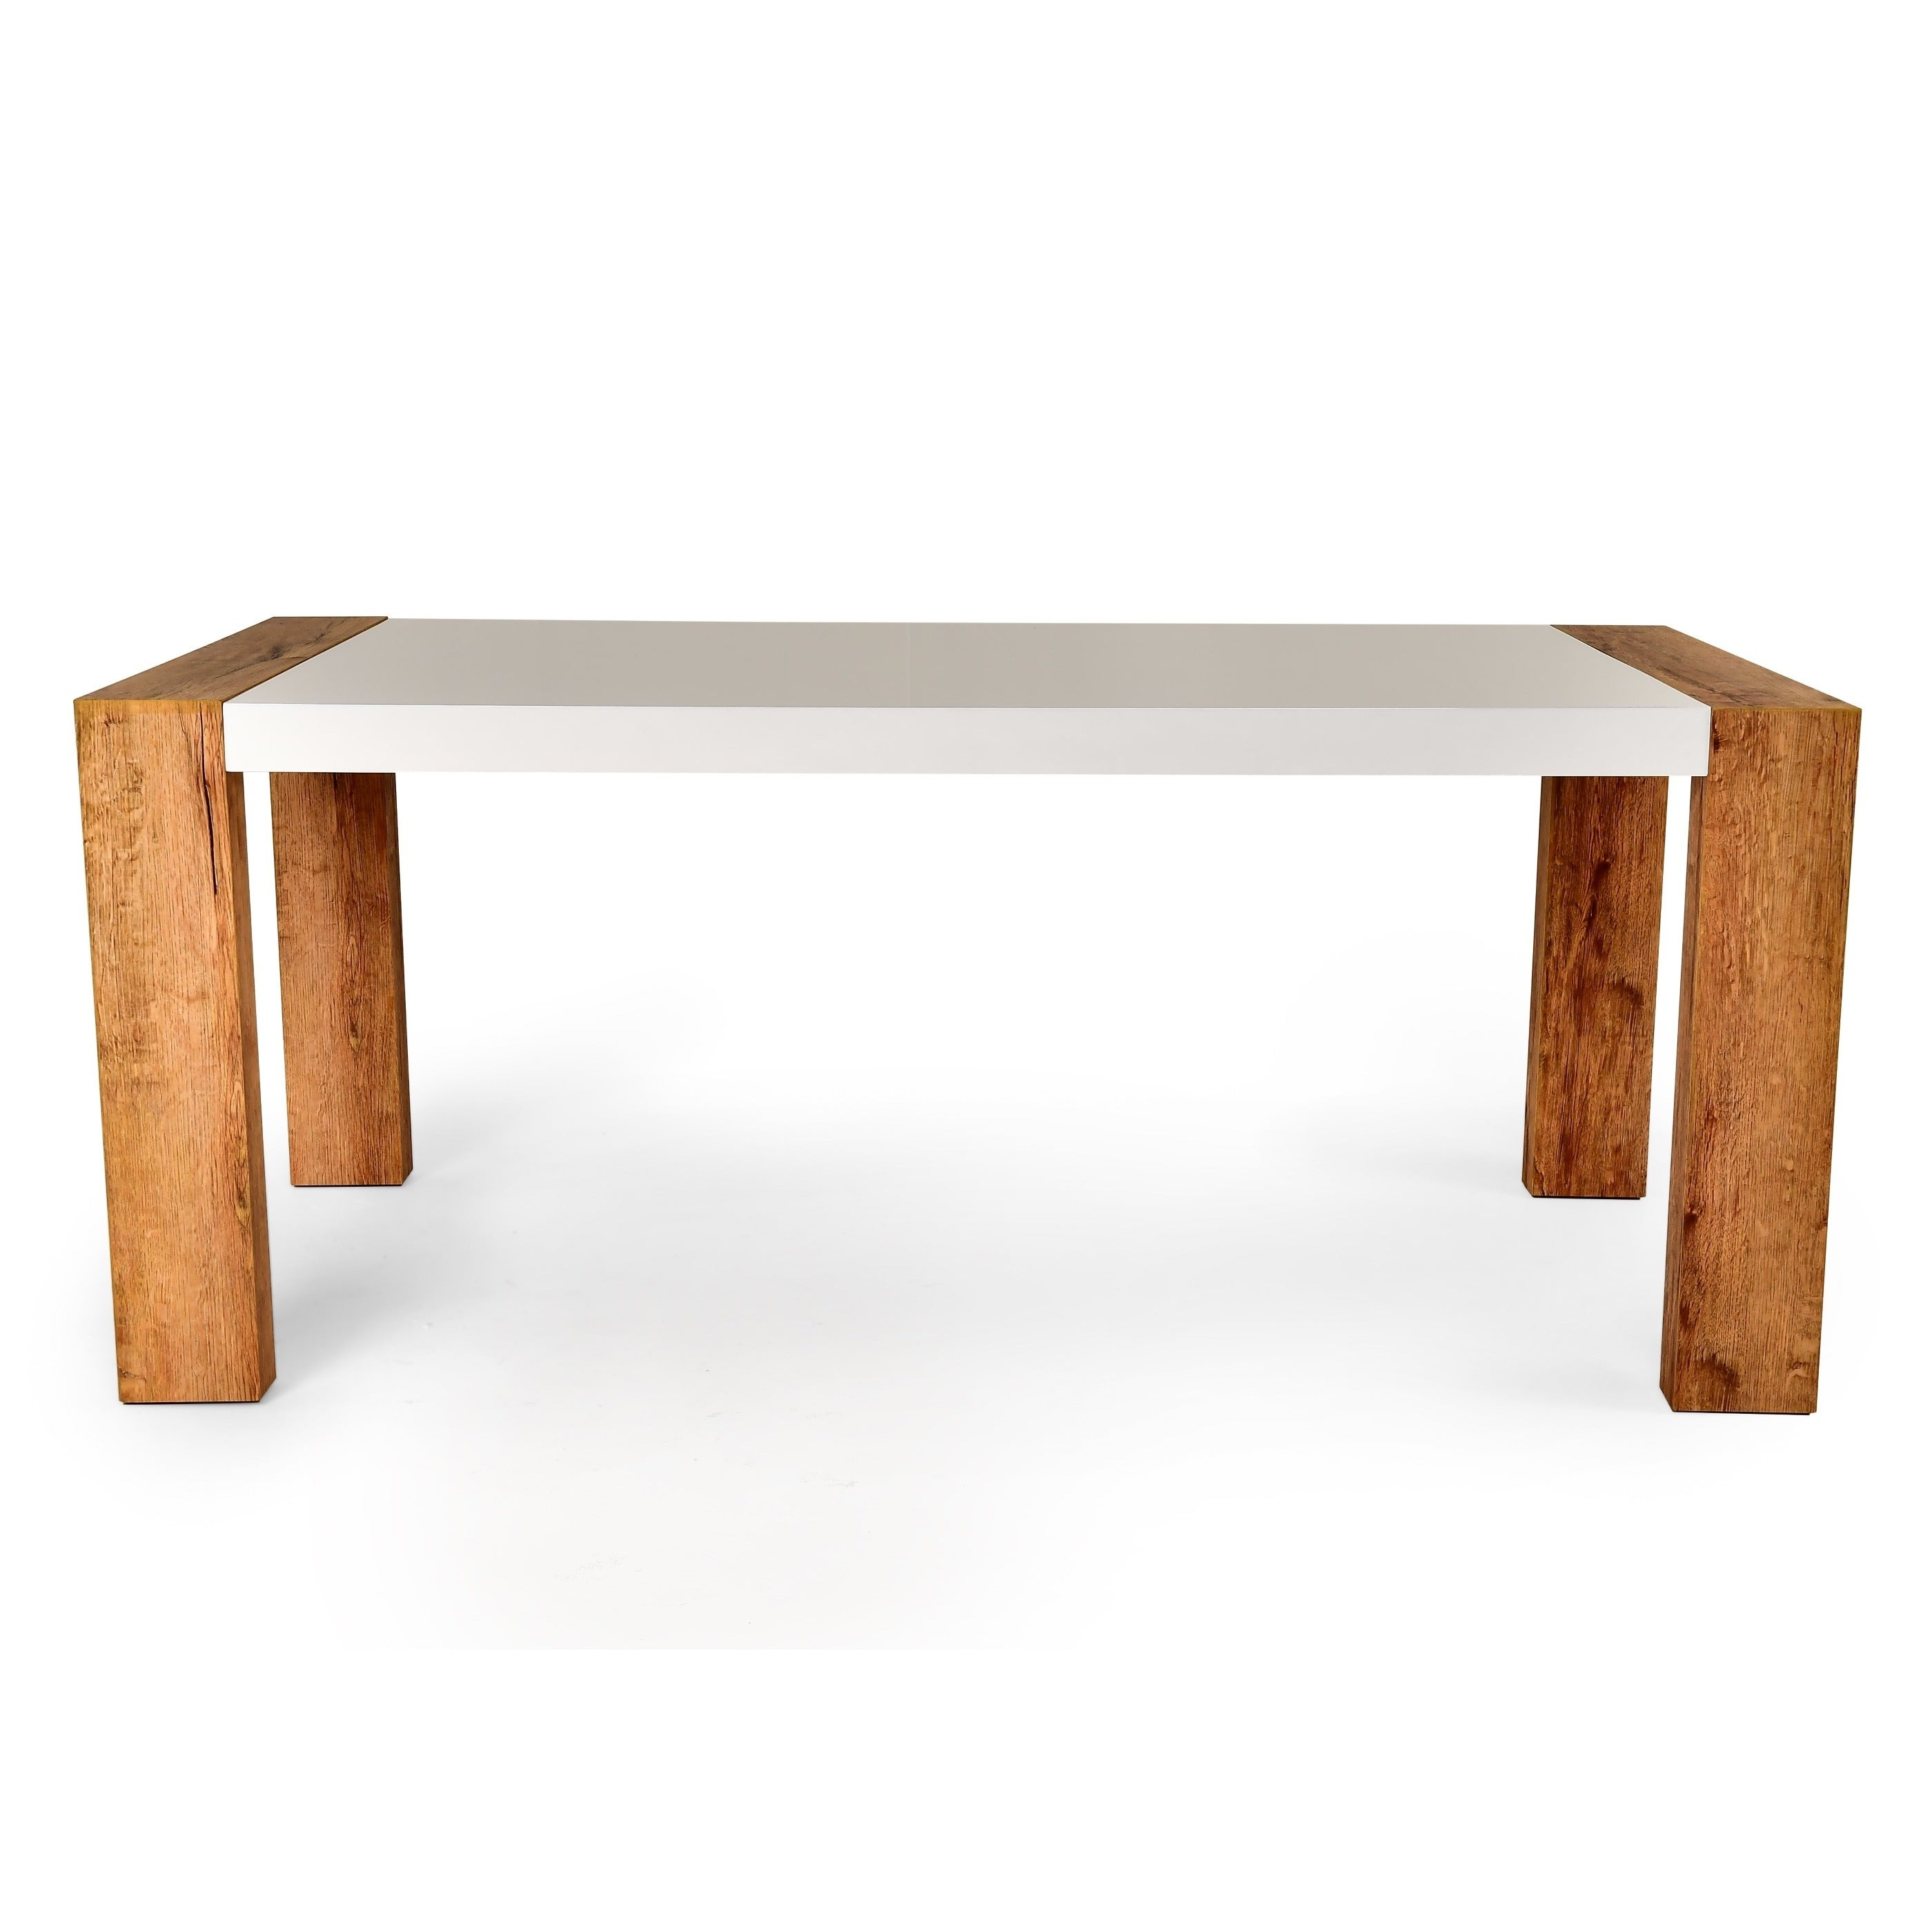 Shop Greyson Living Setwick 6 Foot Dining Table   White   Free Shipping  Today   Overstock.com   11959301